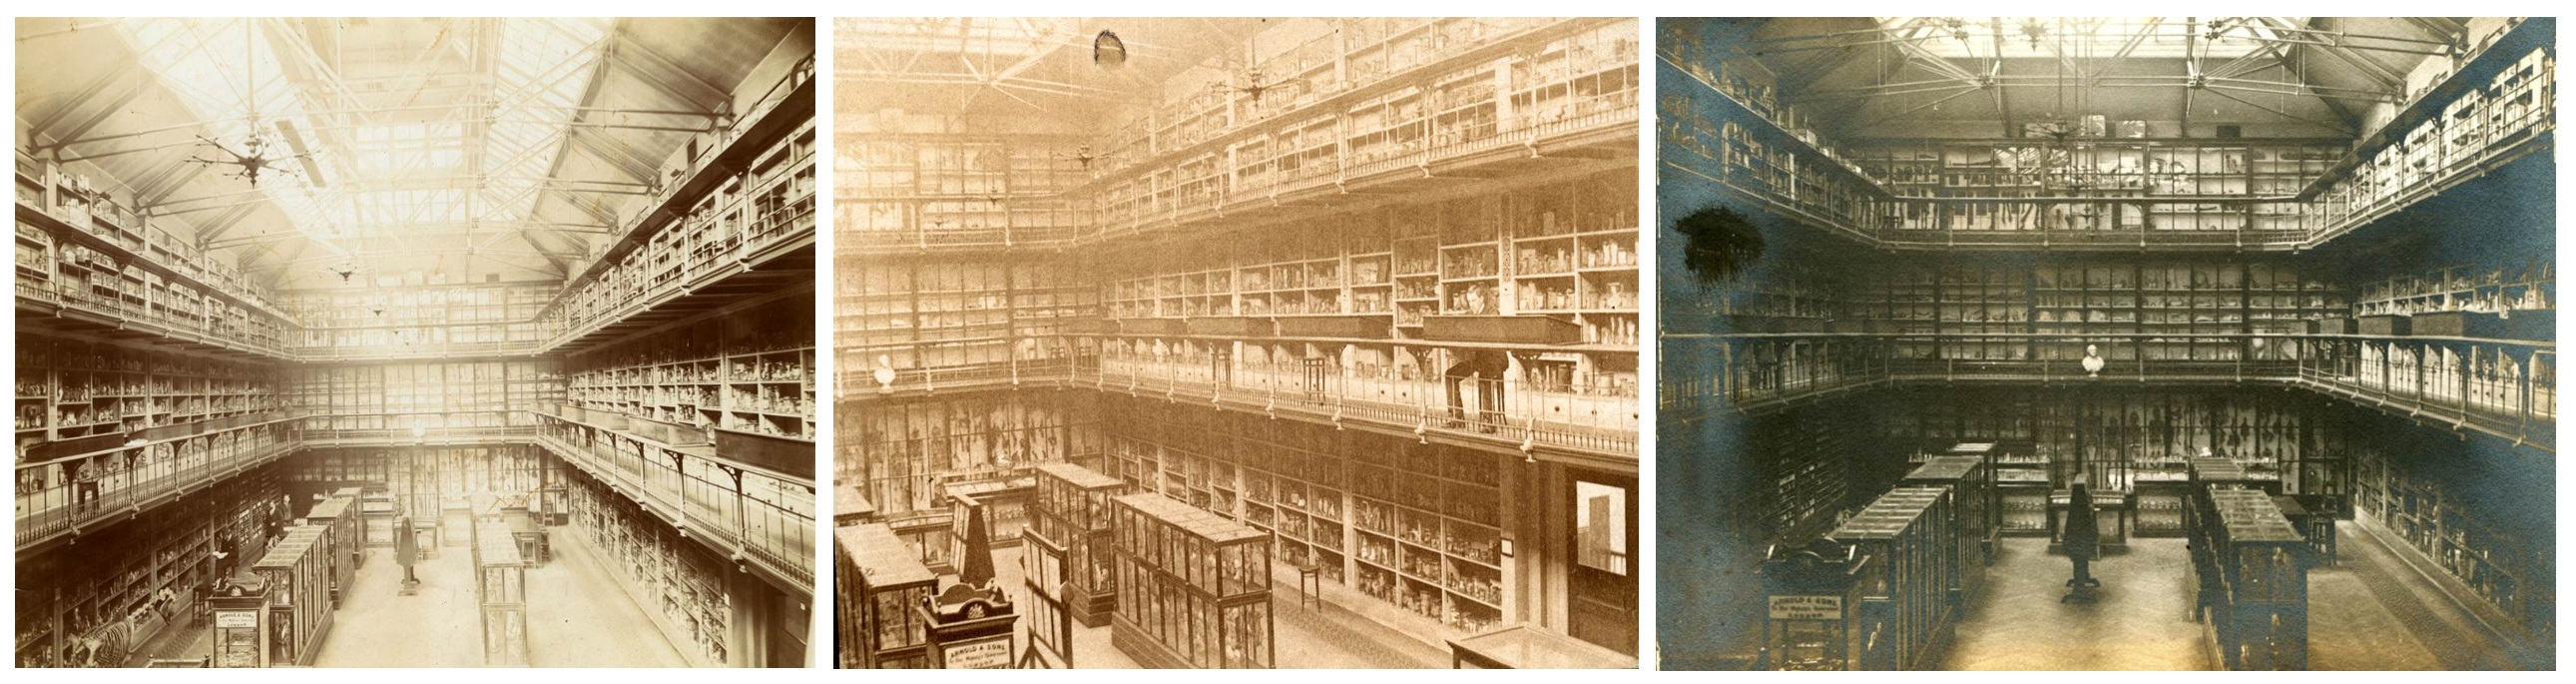 Body Snatchers And Abnormalities In Jars: A History Of Barts Pathology Museum